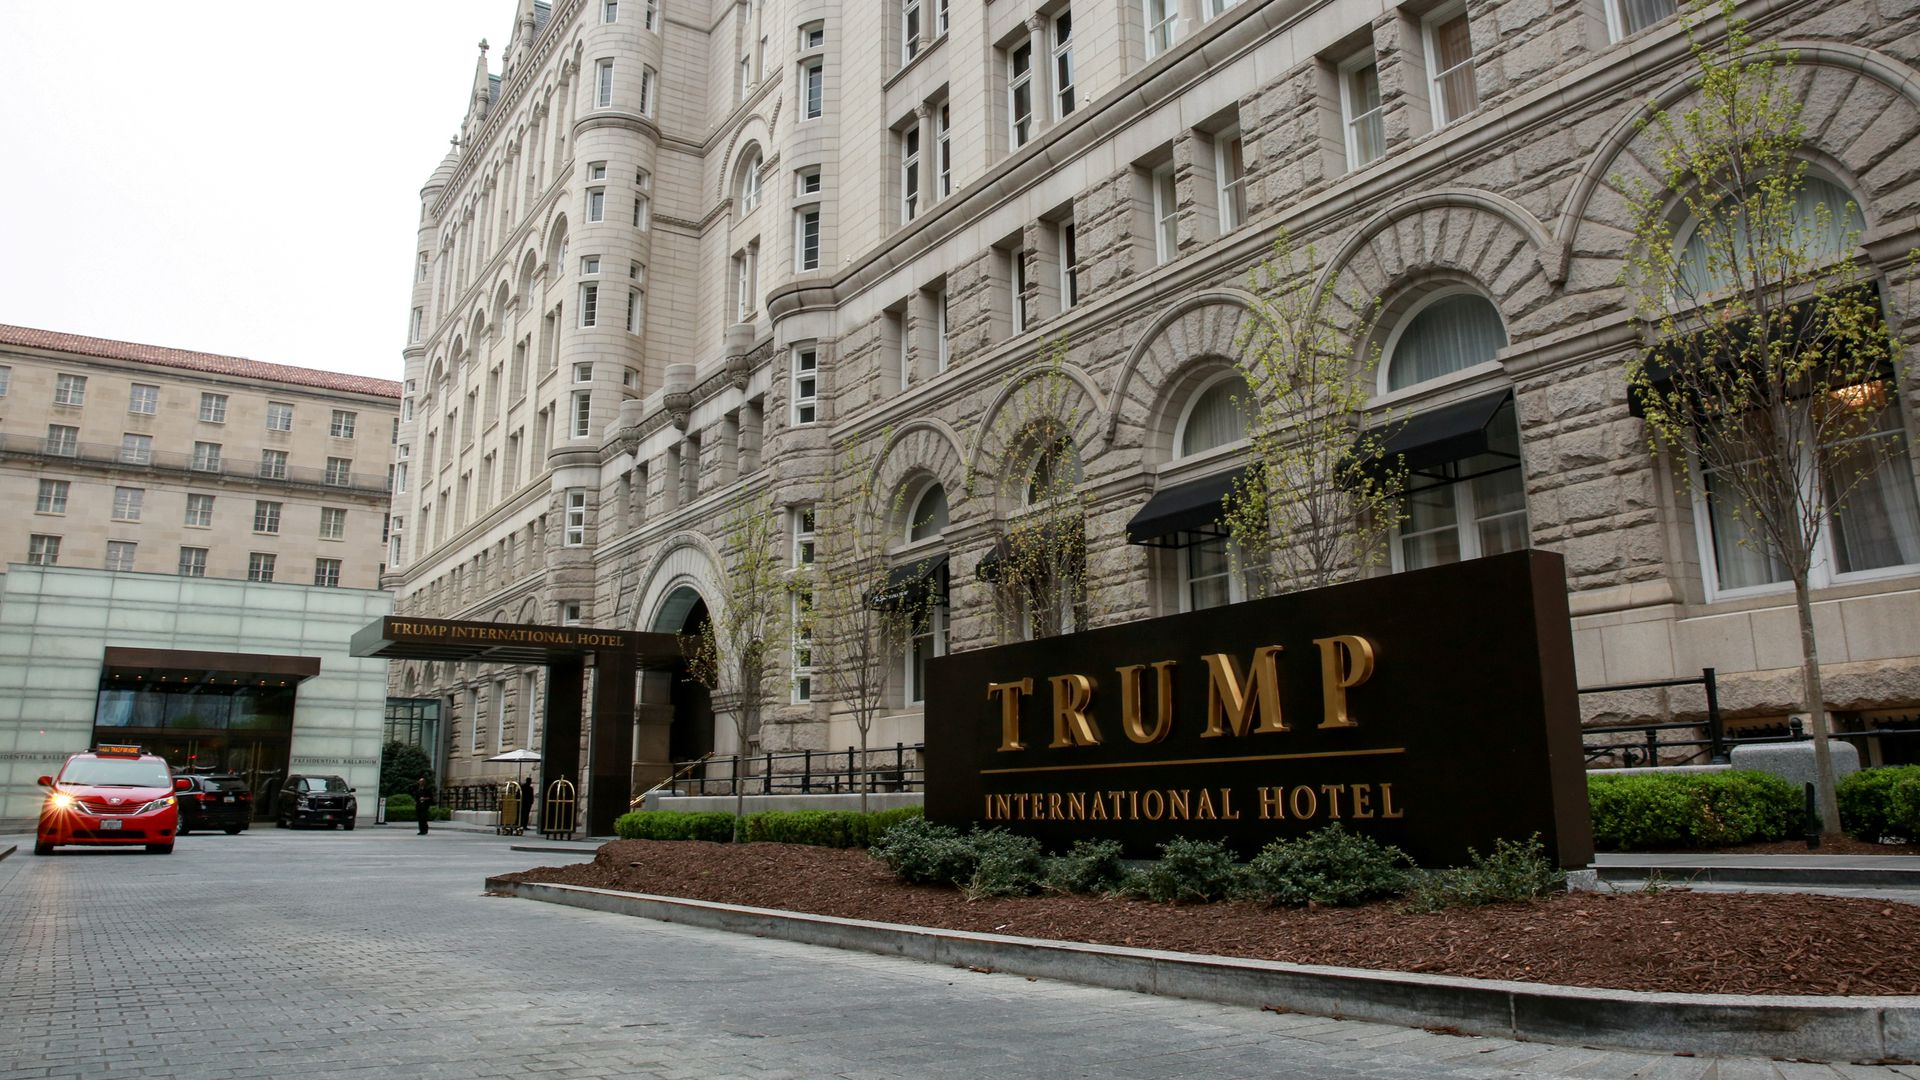 In this image the Trump International Hotel sign is seen in front of a hotel building.